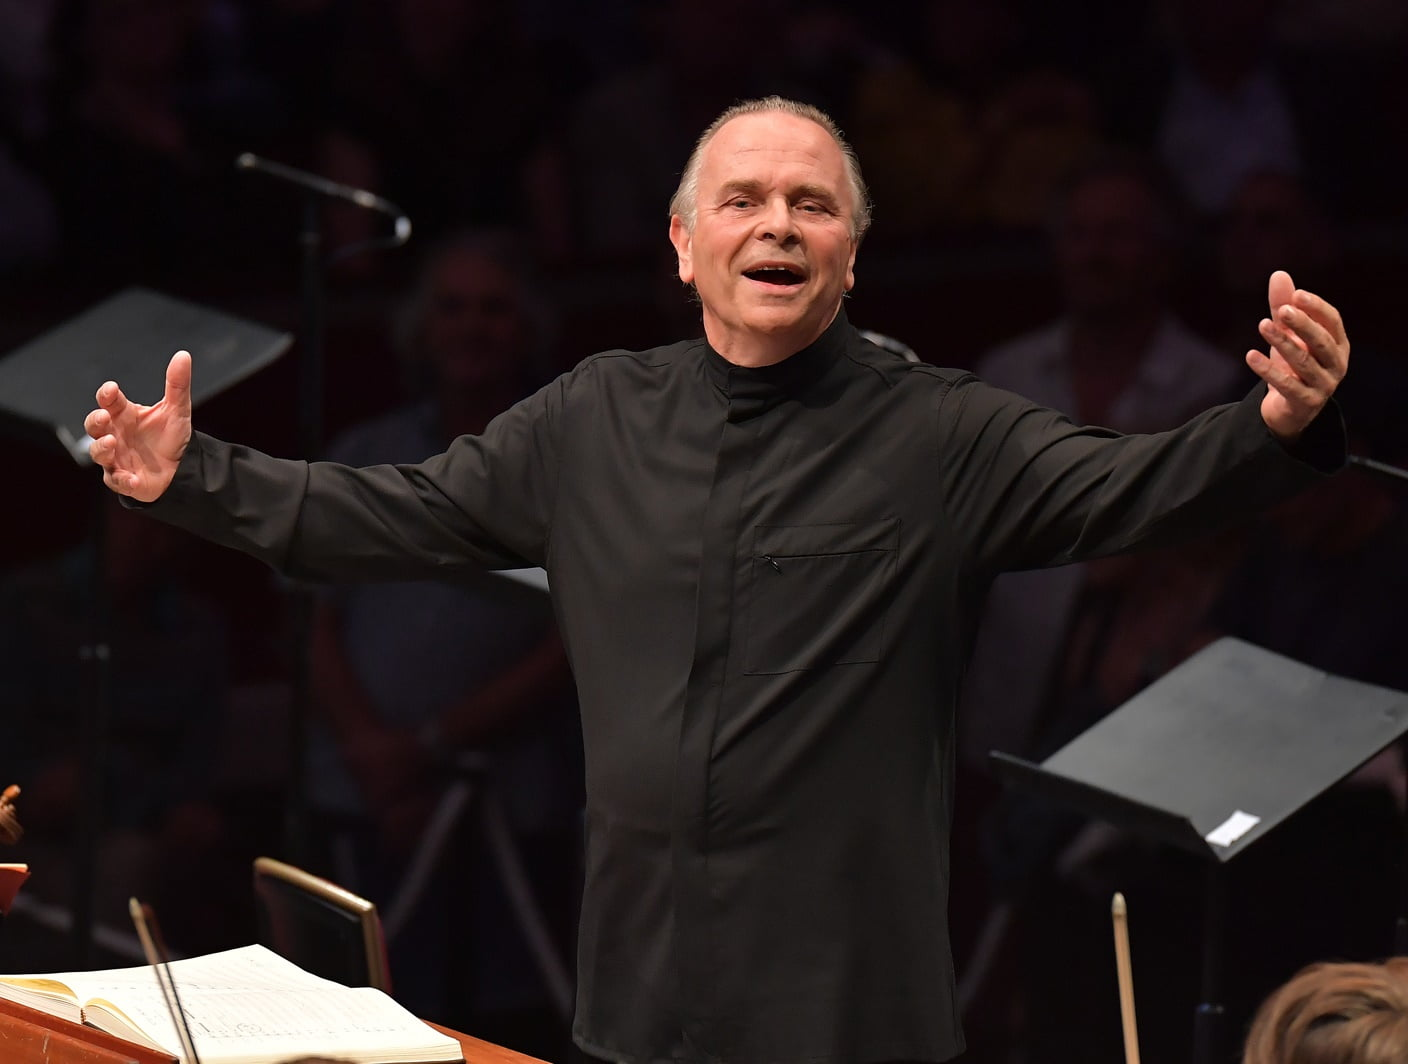 Sir Mark Elder conducts the Opera Rara Chorus and the Orchestra of the Age of Enlightenment at the BBC Proms 2016Photograph: BBC/Chris Christodoulou